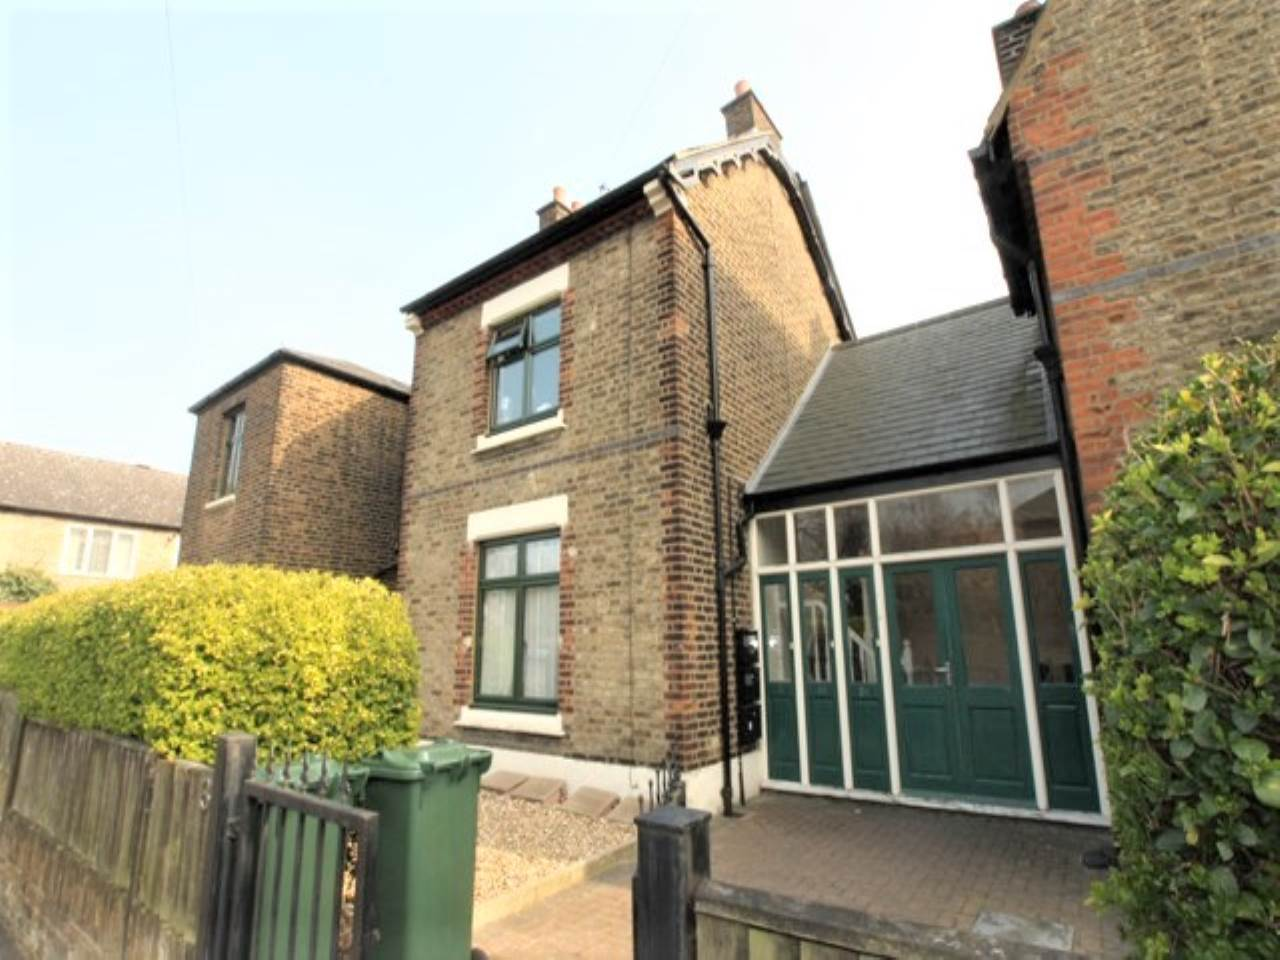 2 bed flat to rent in Vestry Road, Walthamstow 0